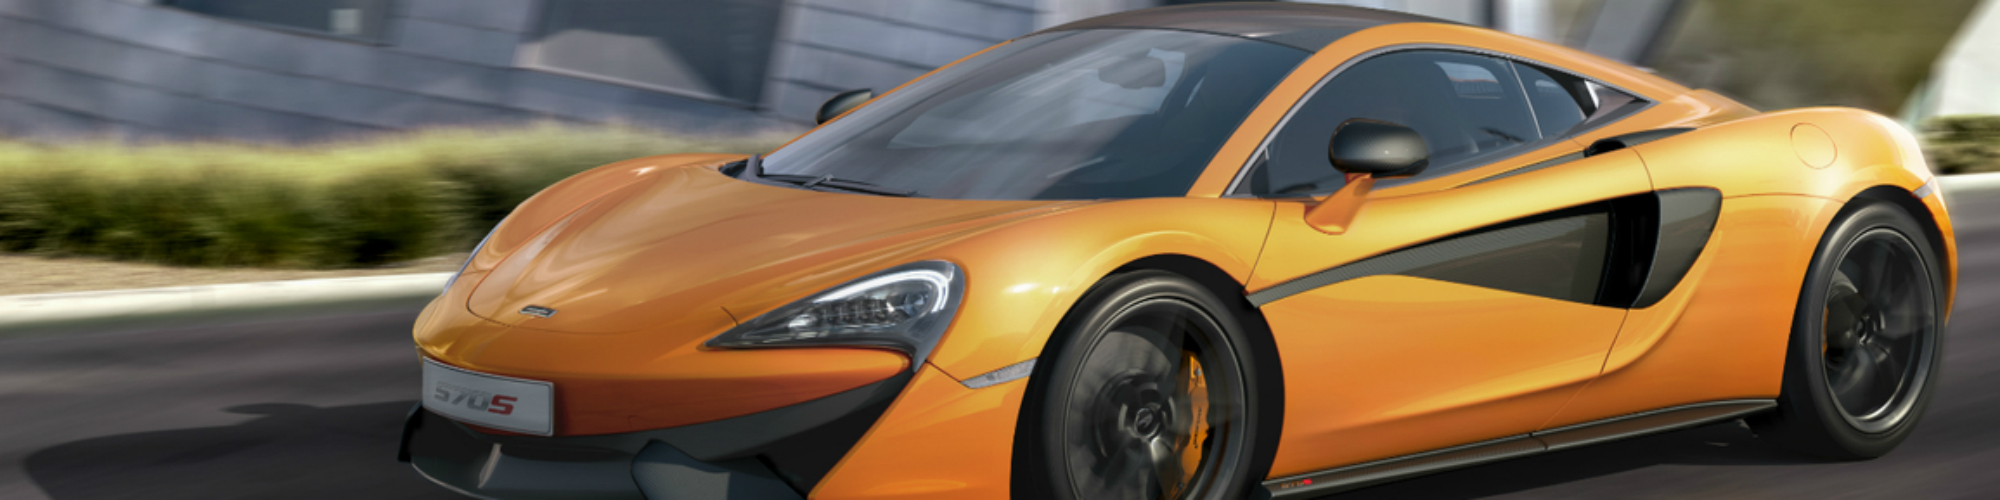 For Creating Some Of The Best High Performance Cars Today, McLaren  Dominates In